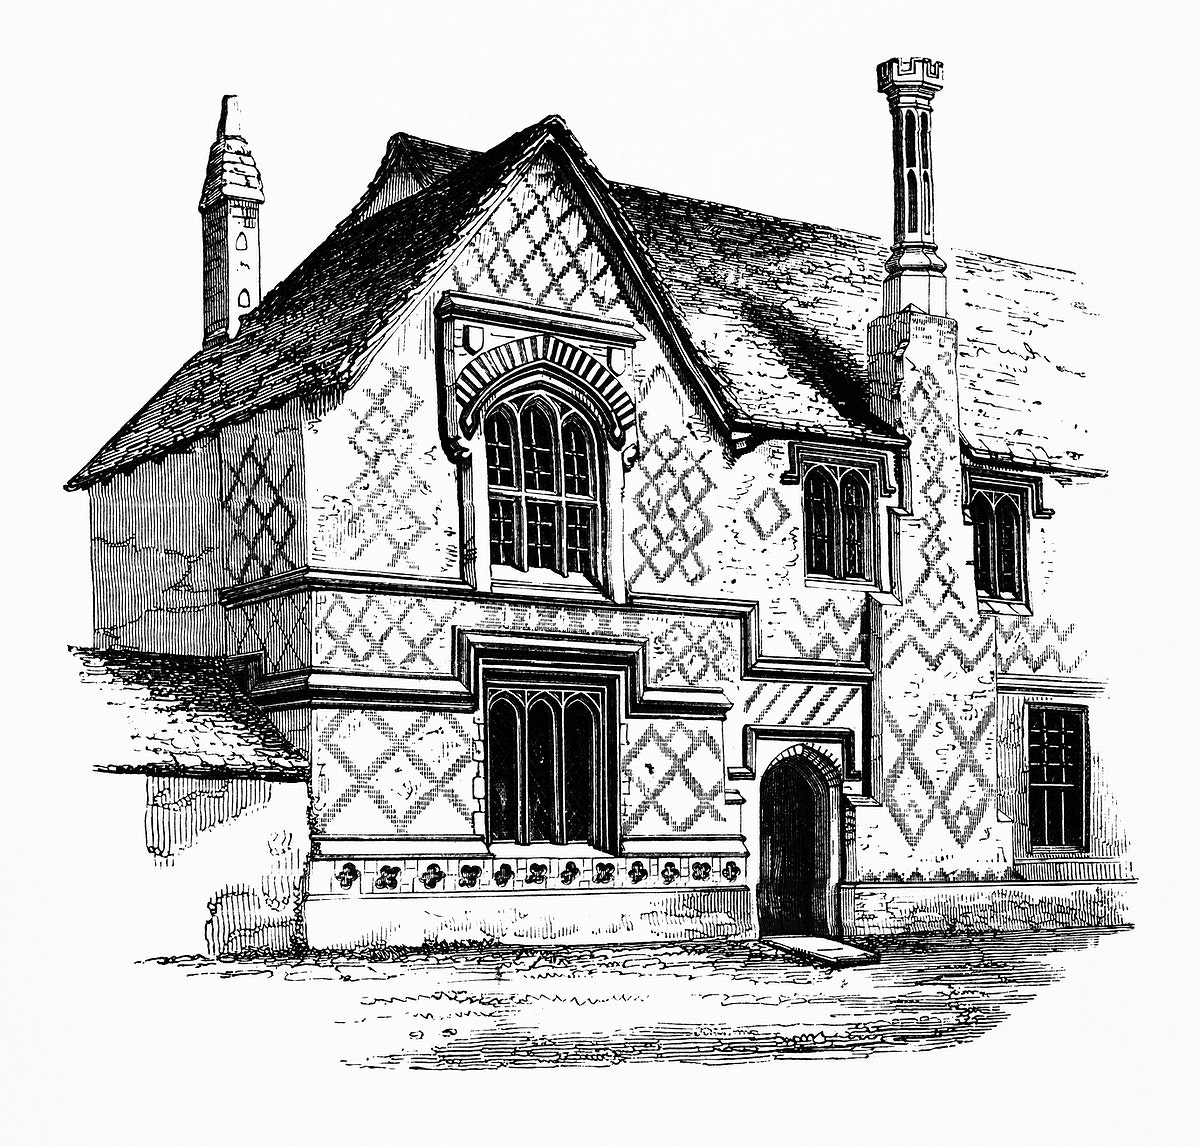 Residential Building (1862) from Gazette Des Beaux-Arts, a French art review. Digitally enhanced from our own facsimile book.